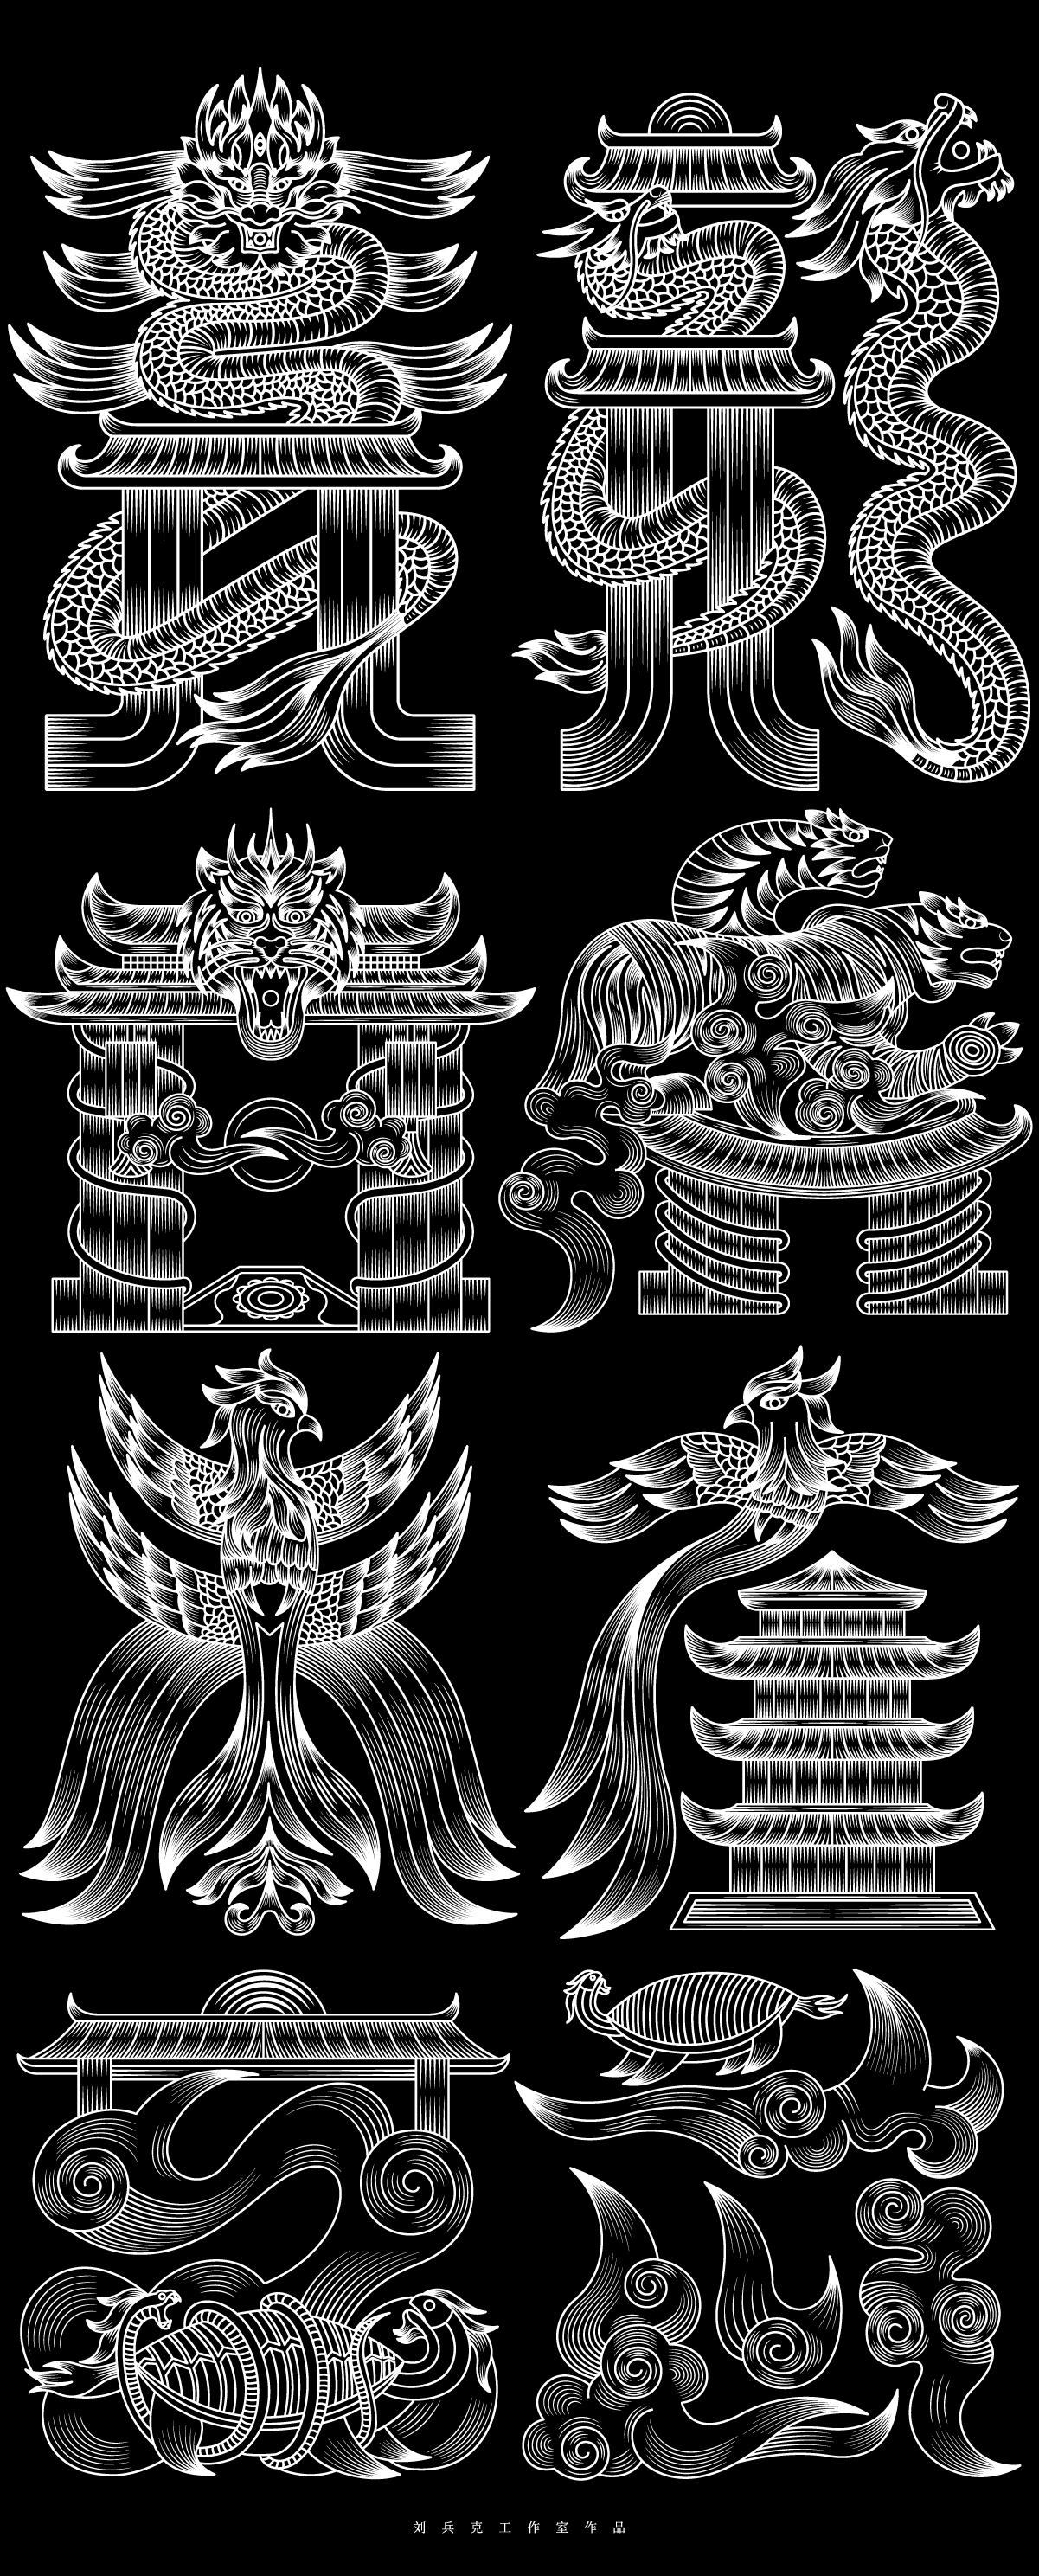 8P Collection of the latest Chinese font design schemes in 2021 #.212